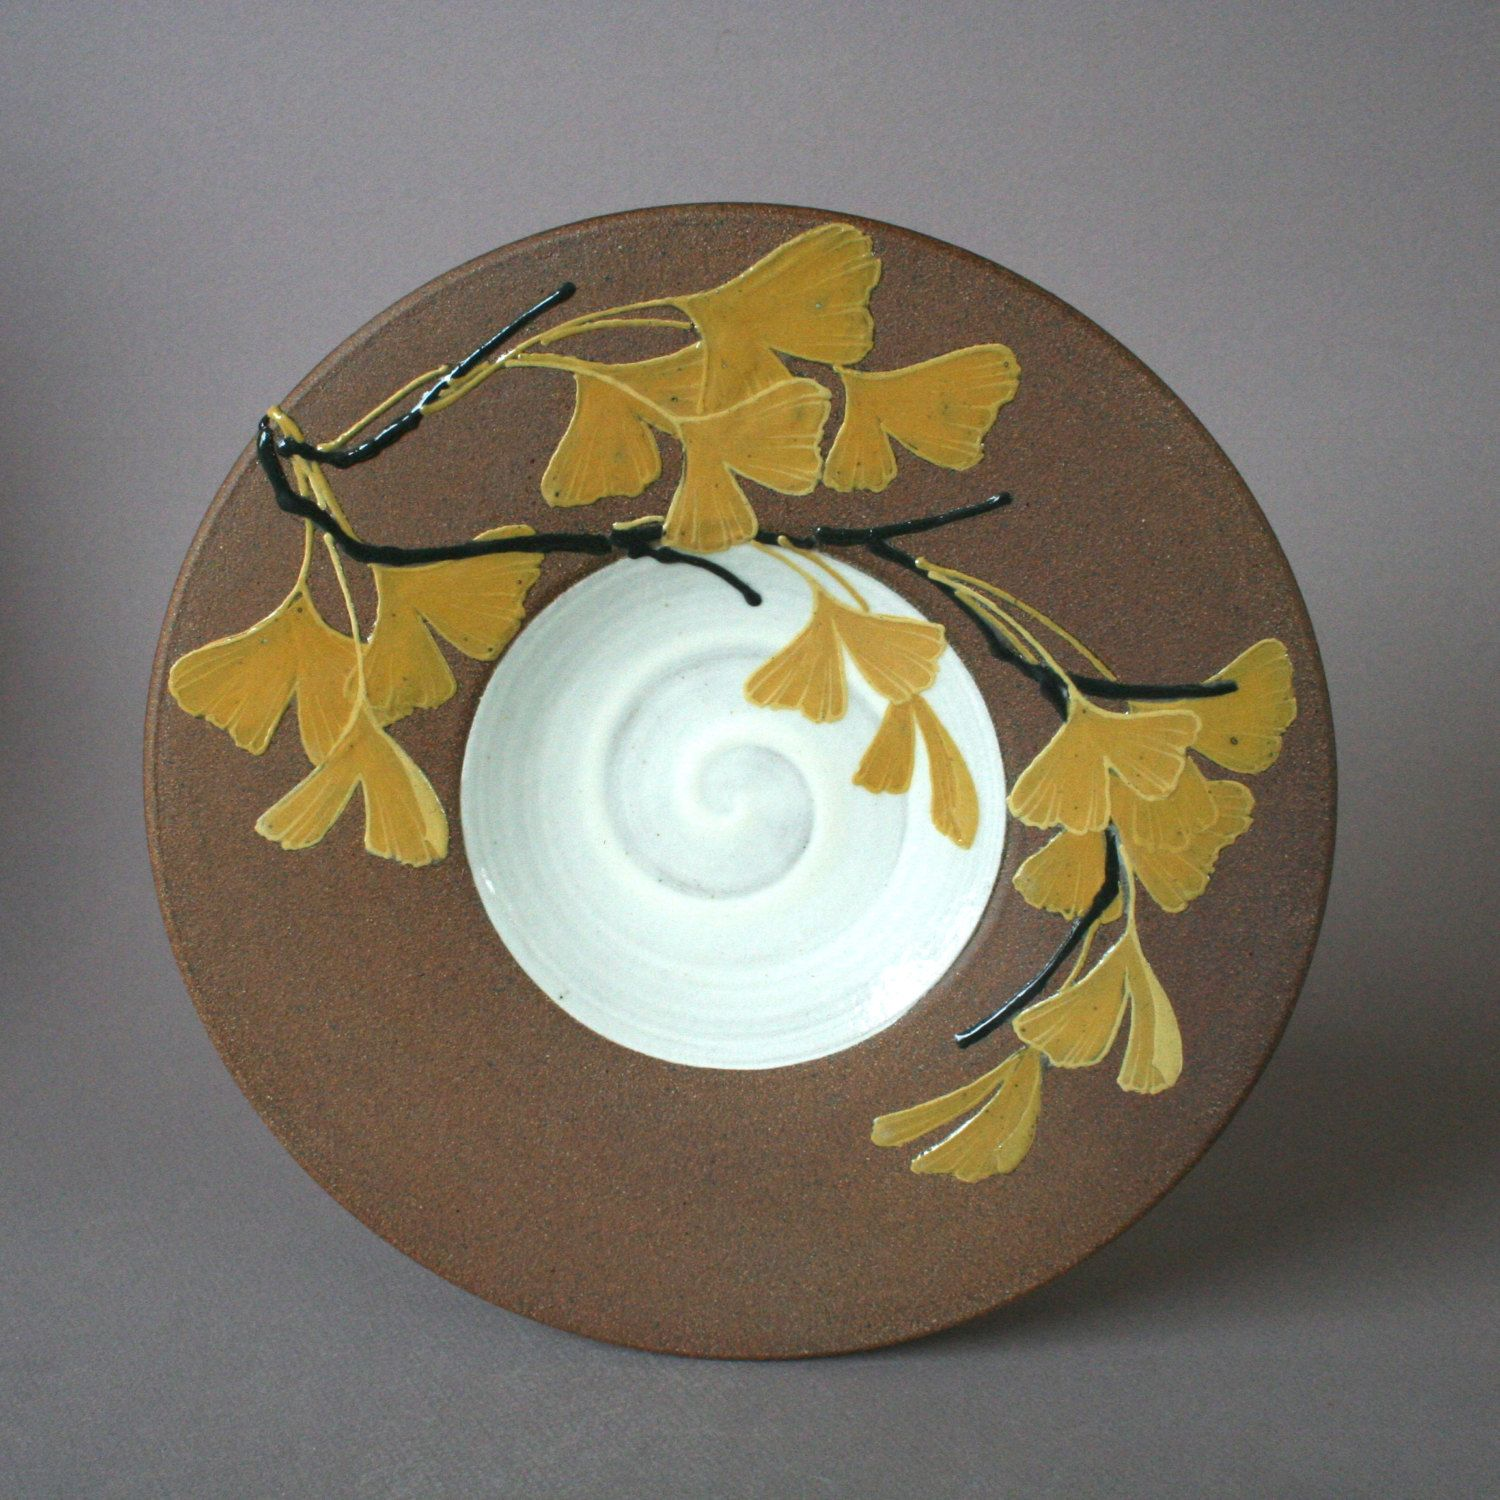 Best 25 pottery designs ideas on pinterest pottery for Craft classes near me